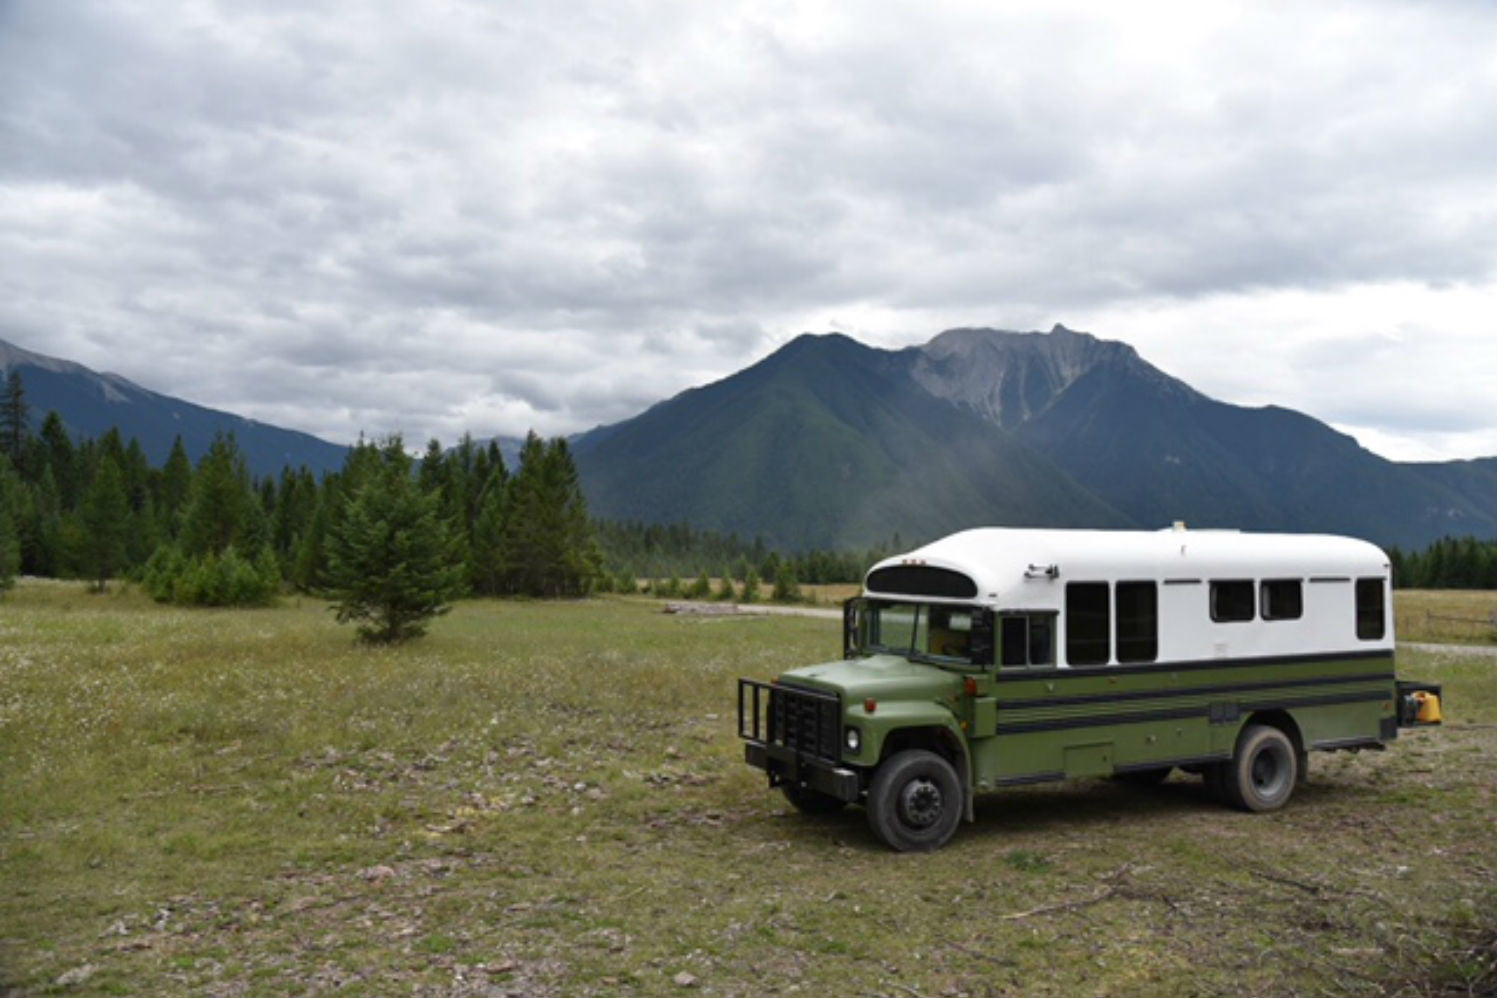 coolest bus to mobile home conversions kylevolkmanbusafter